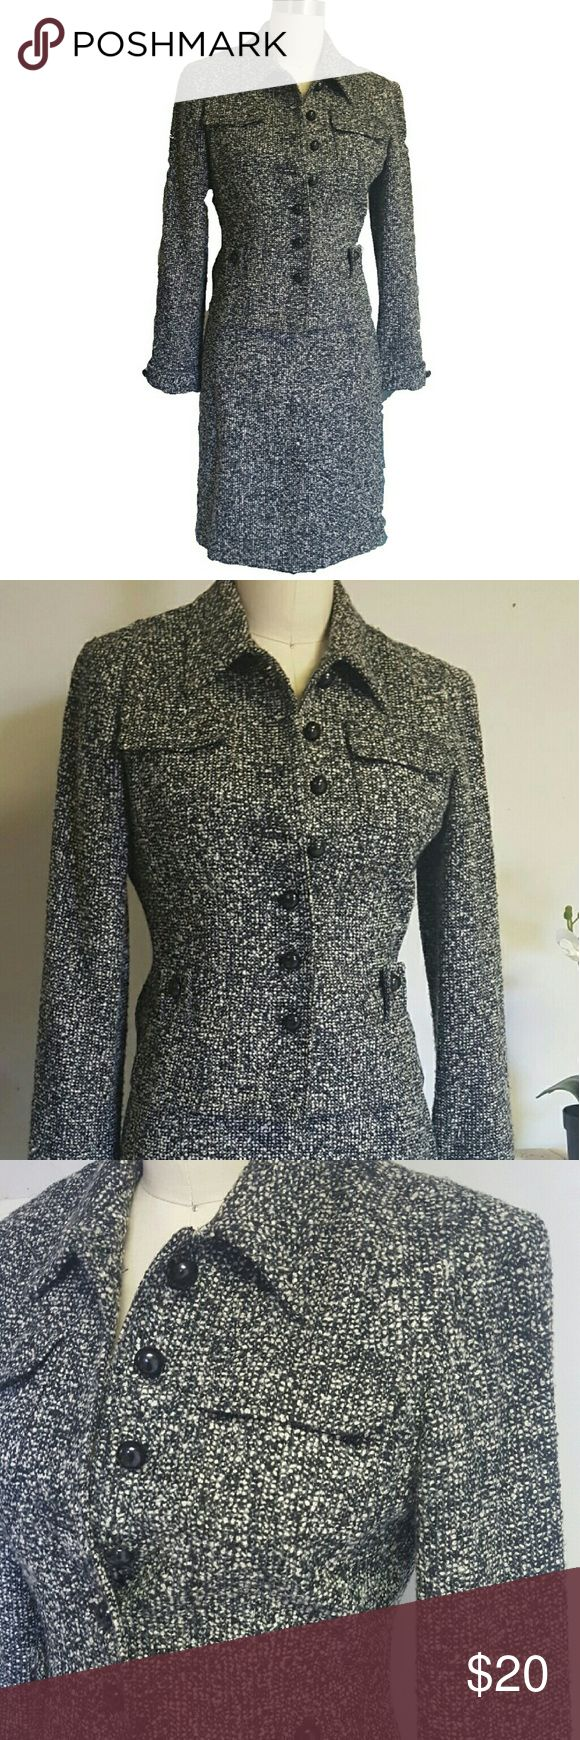 Tweed Power Work Suit I.N.C Business suit. In excellent used condition. Very nice set. The jacket can also be worn separately with jeans. 2 peice set. INC International Concepts Jackets & Coats Blazers